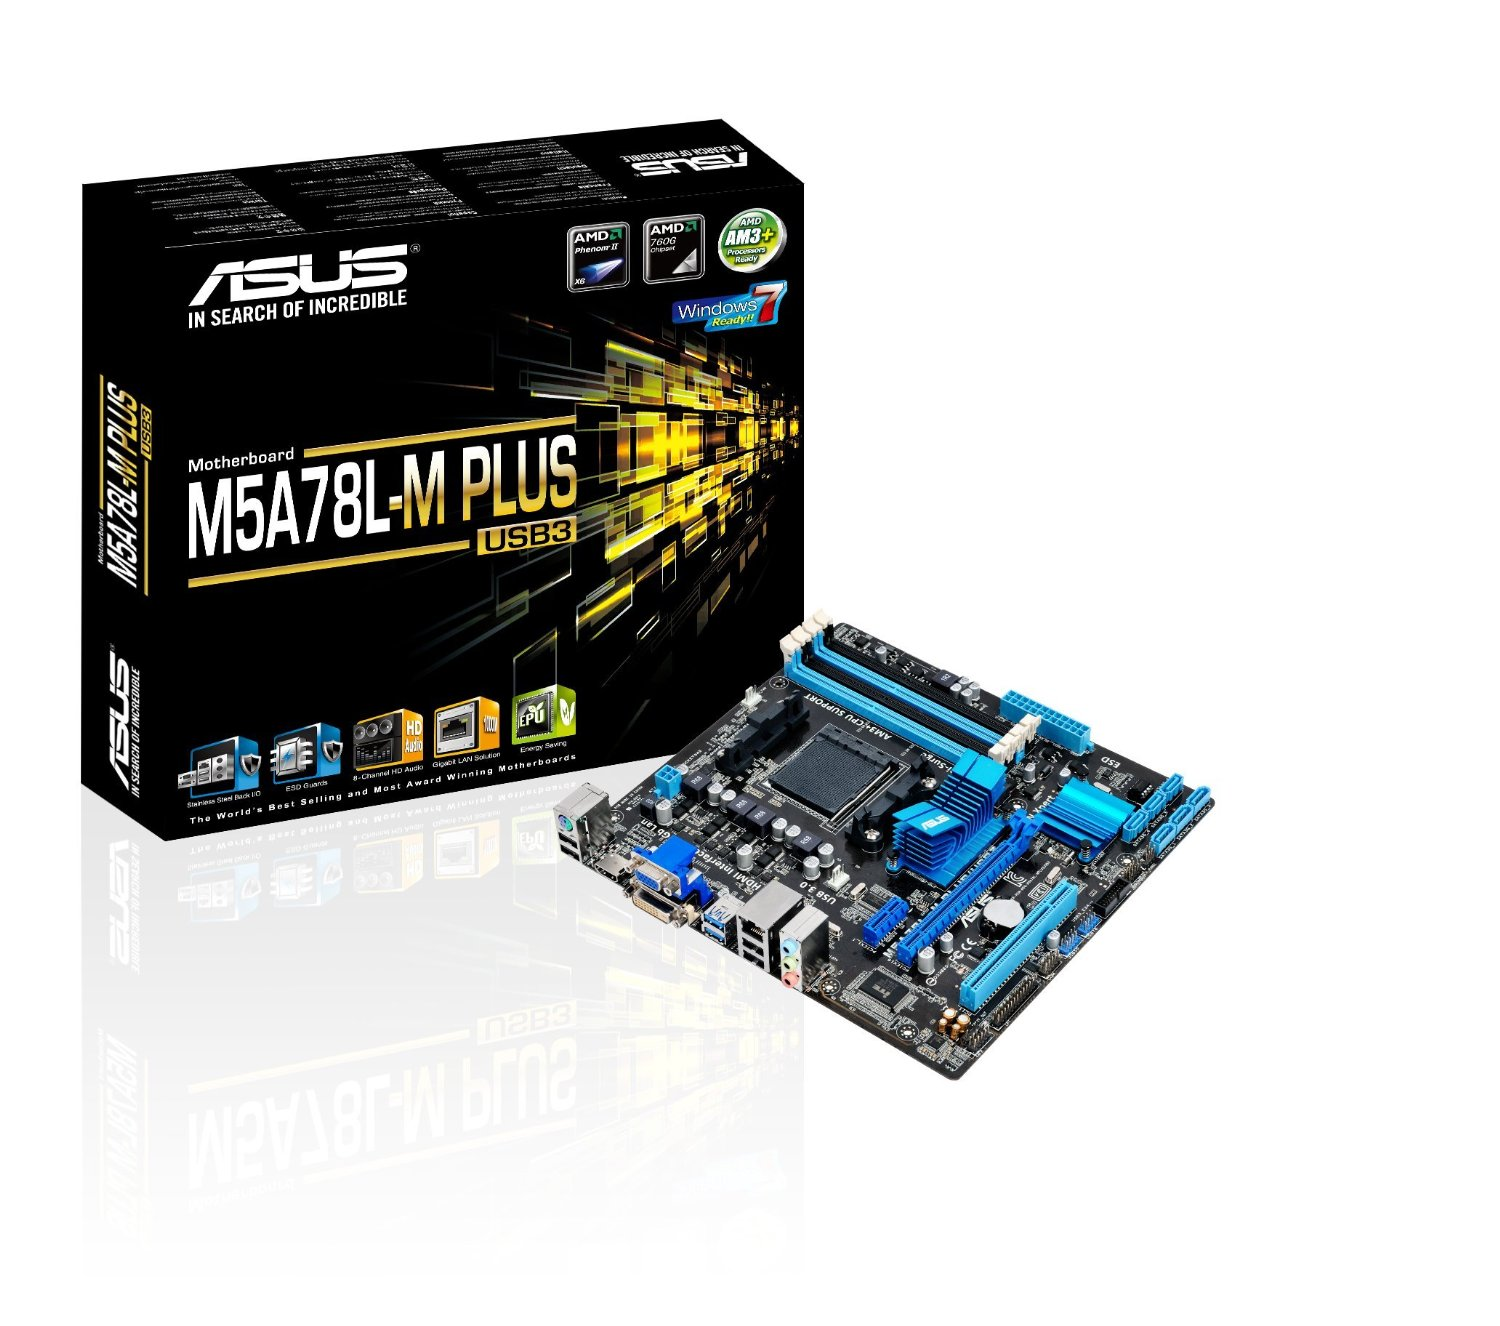 asus m5a78l m plus usb3 am3 ddr3 hdmi 760g microatx motherboard 97 asus m5a78l m plus usb3 am3 ddr3 hdmi 760g microatx motherboard  at edmiracle.co